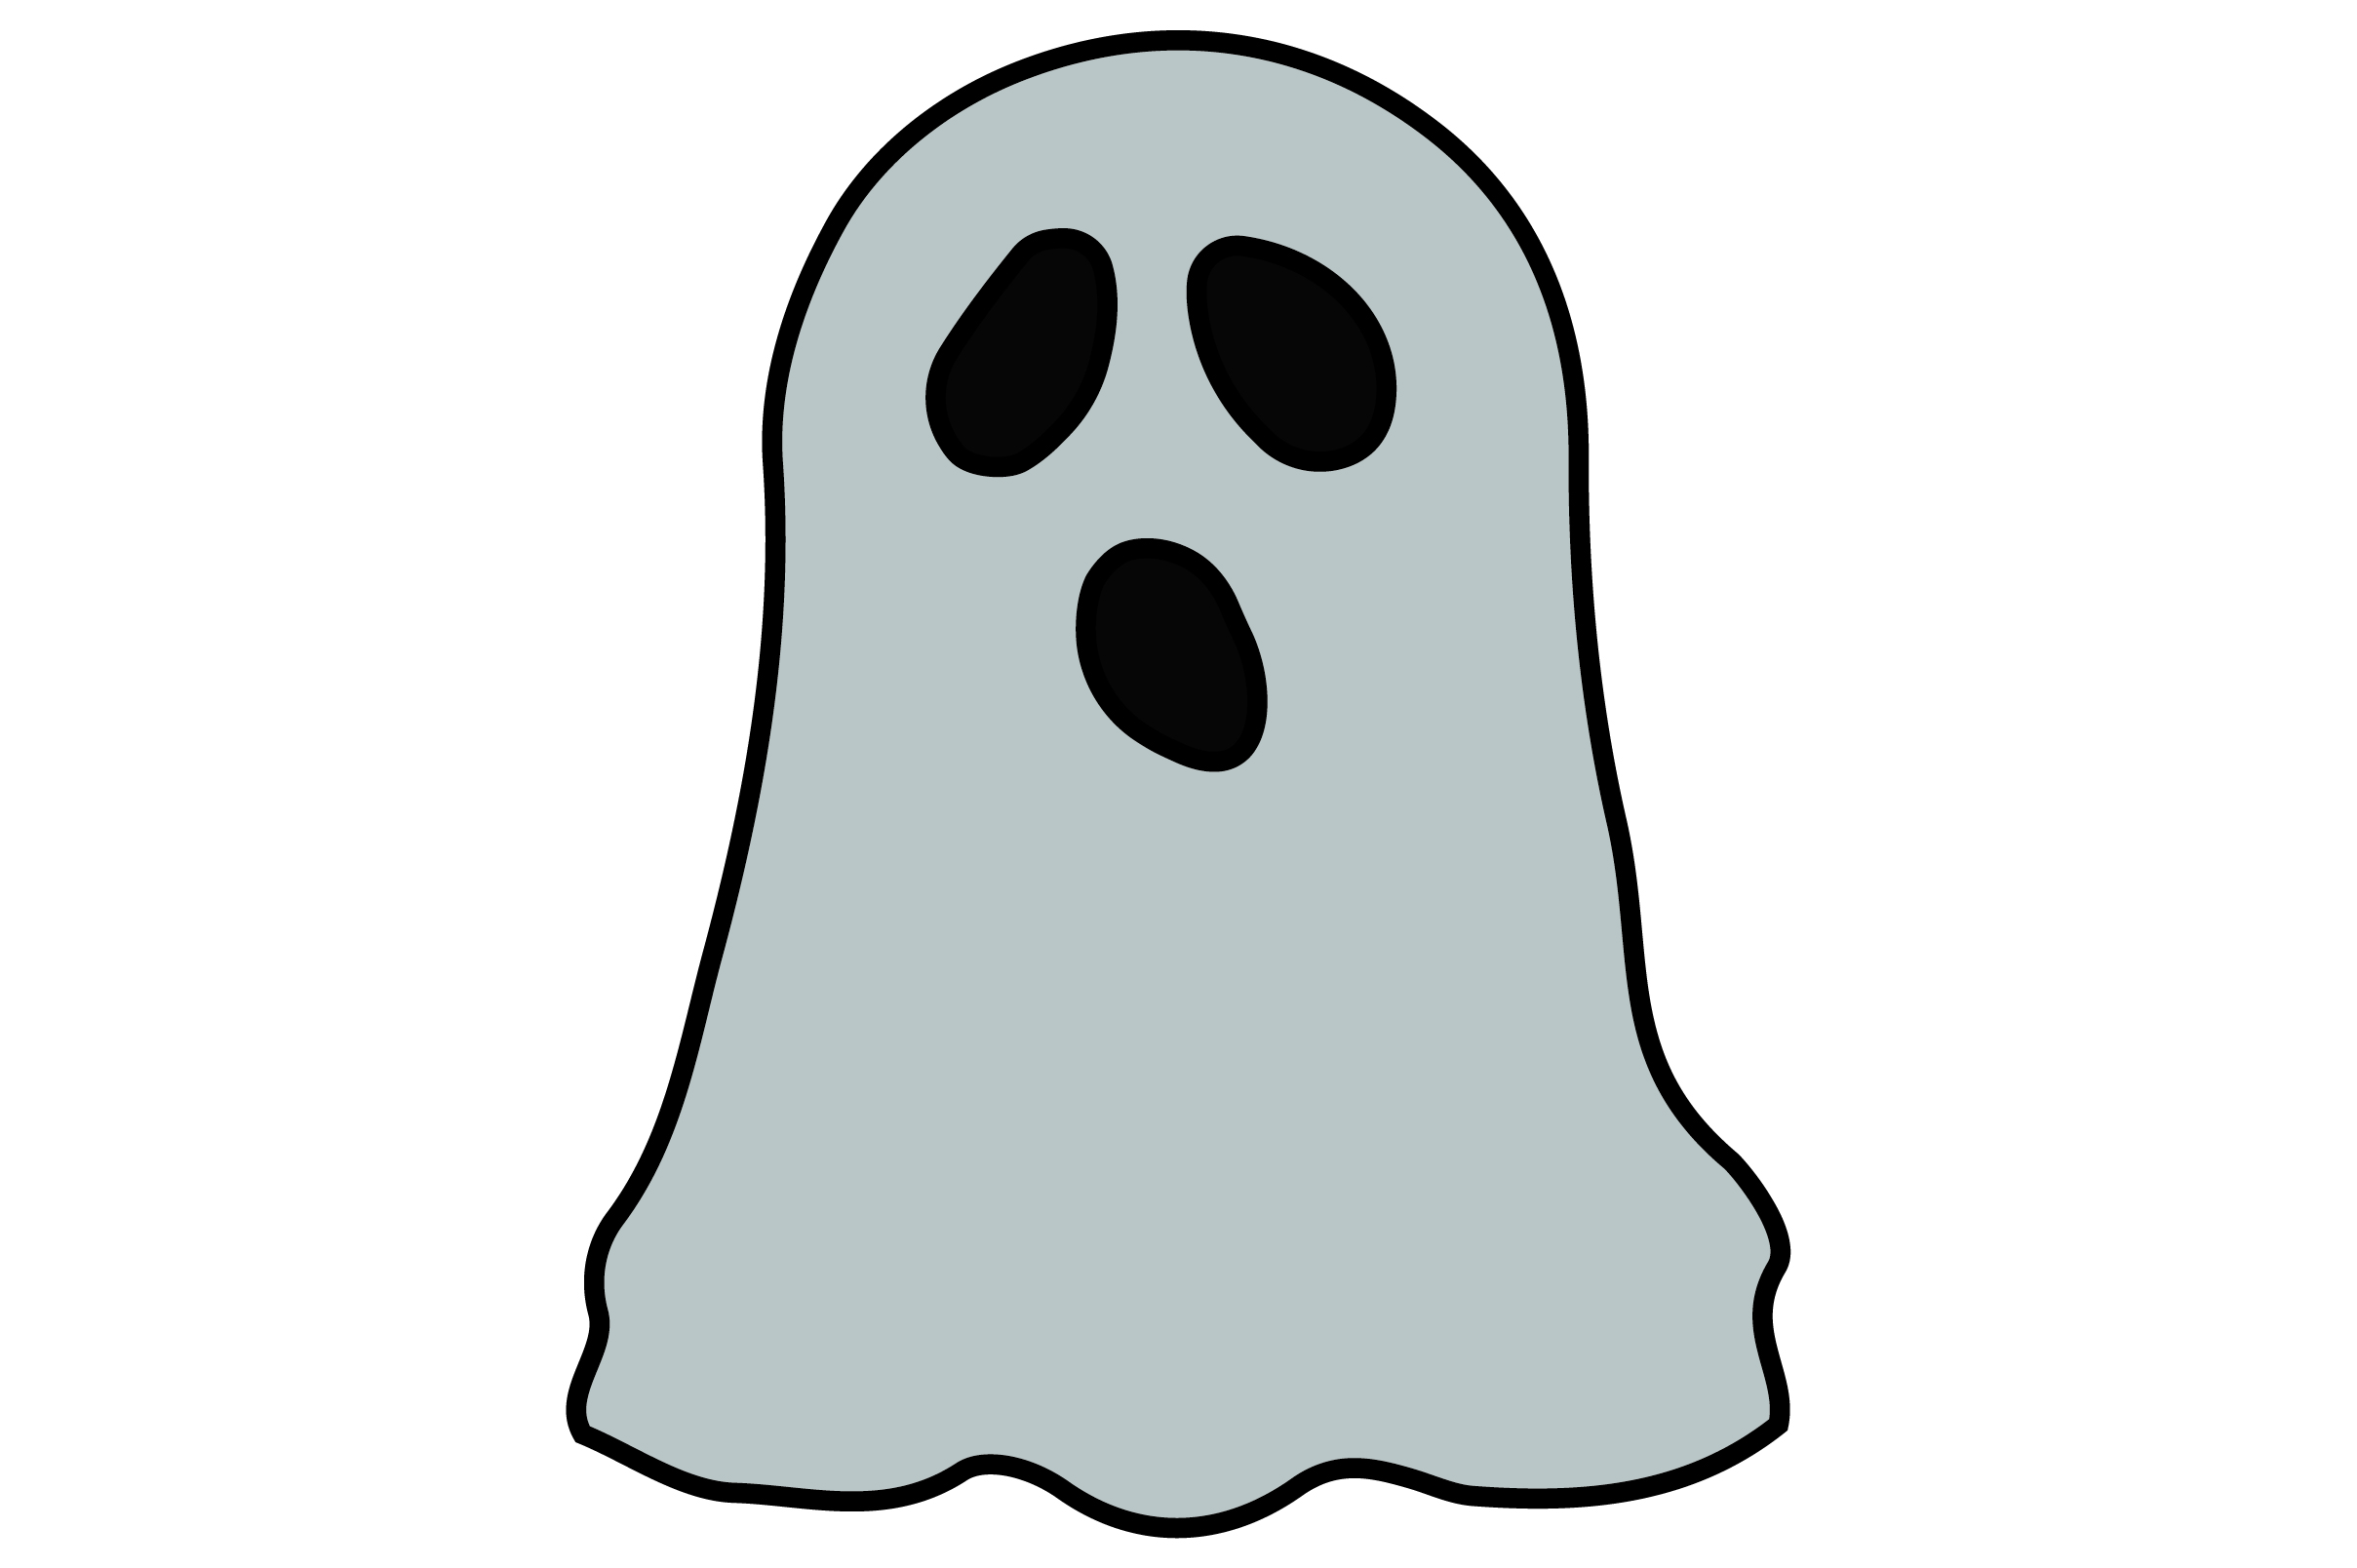 Halloween Cute Ghost Graphic By Thomasrayle Creative Fabrica Choose from 140+ cute ghost graphic resources and download in the form of png, eps, ai or psd. halloween cute ghost